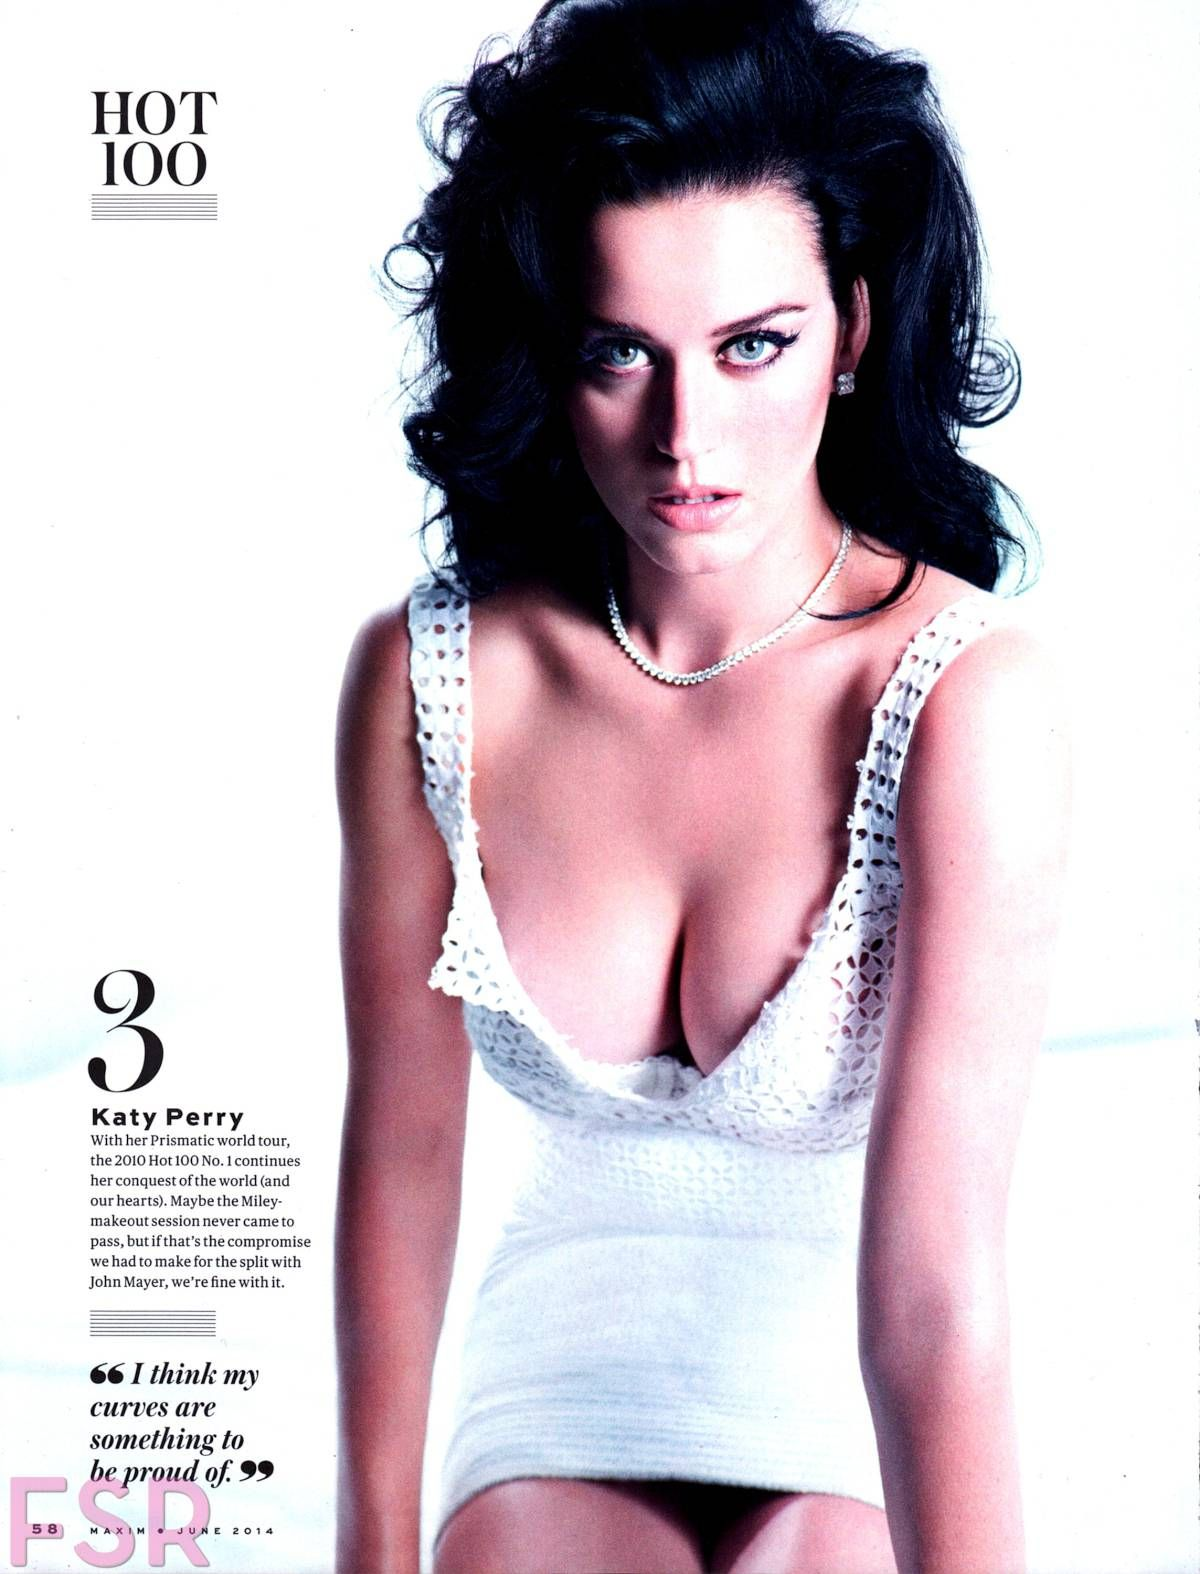 KATY PERRY in Maxim Magazine, June 2014 Issue